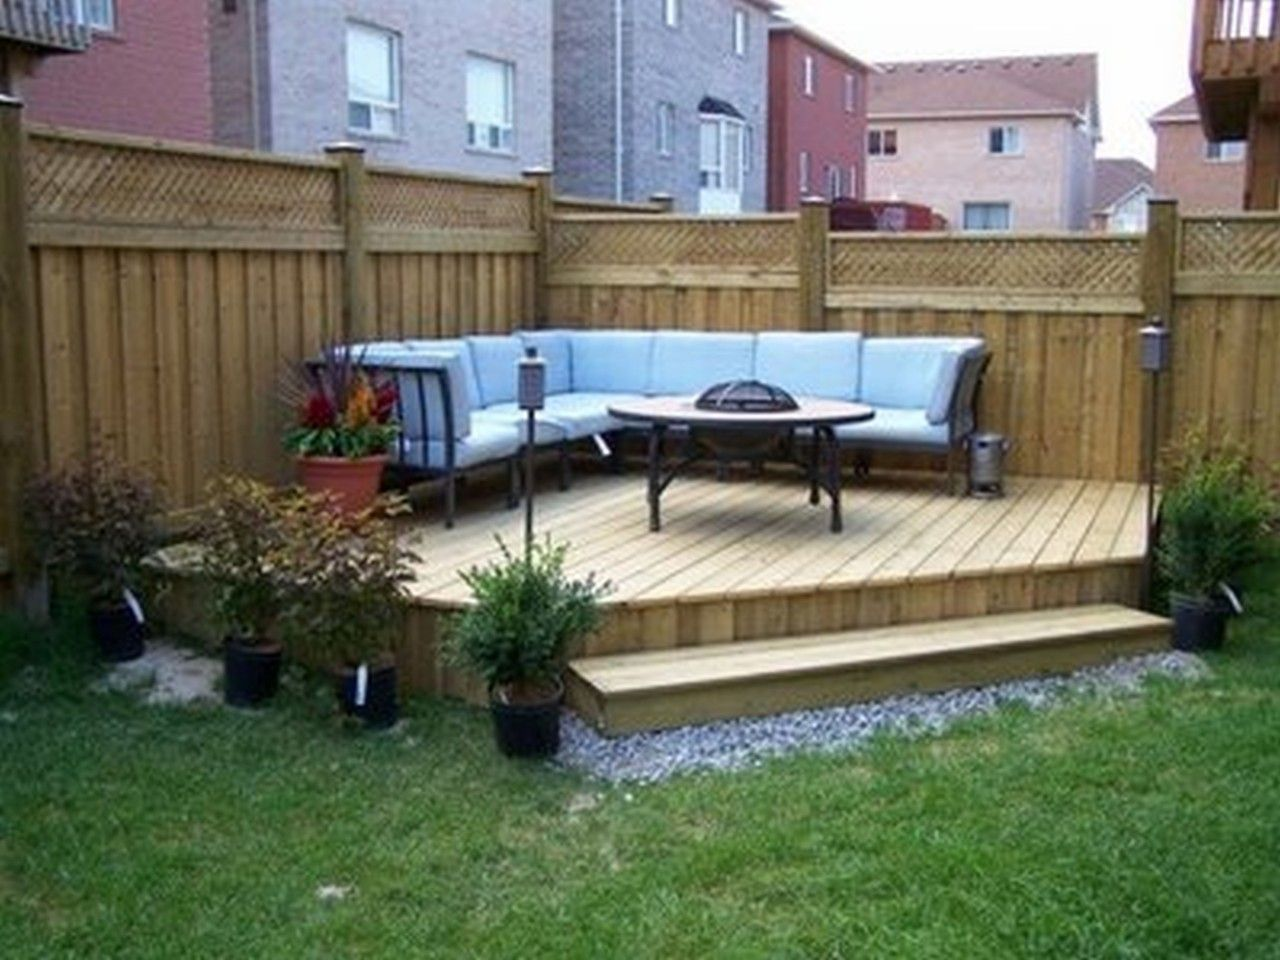 Enthralling Easy On Backyard Gardens Structure Backyard Designswinning Things Backyard Easy On Backyard Gardens Structure Backyard outdoor Cool Backyard Designs